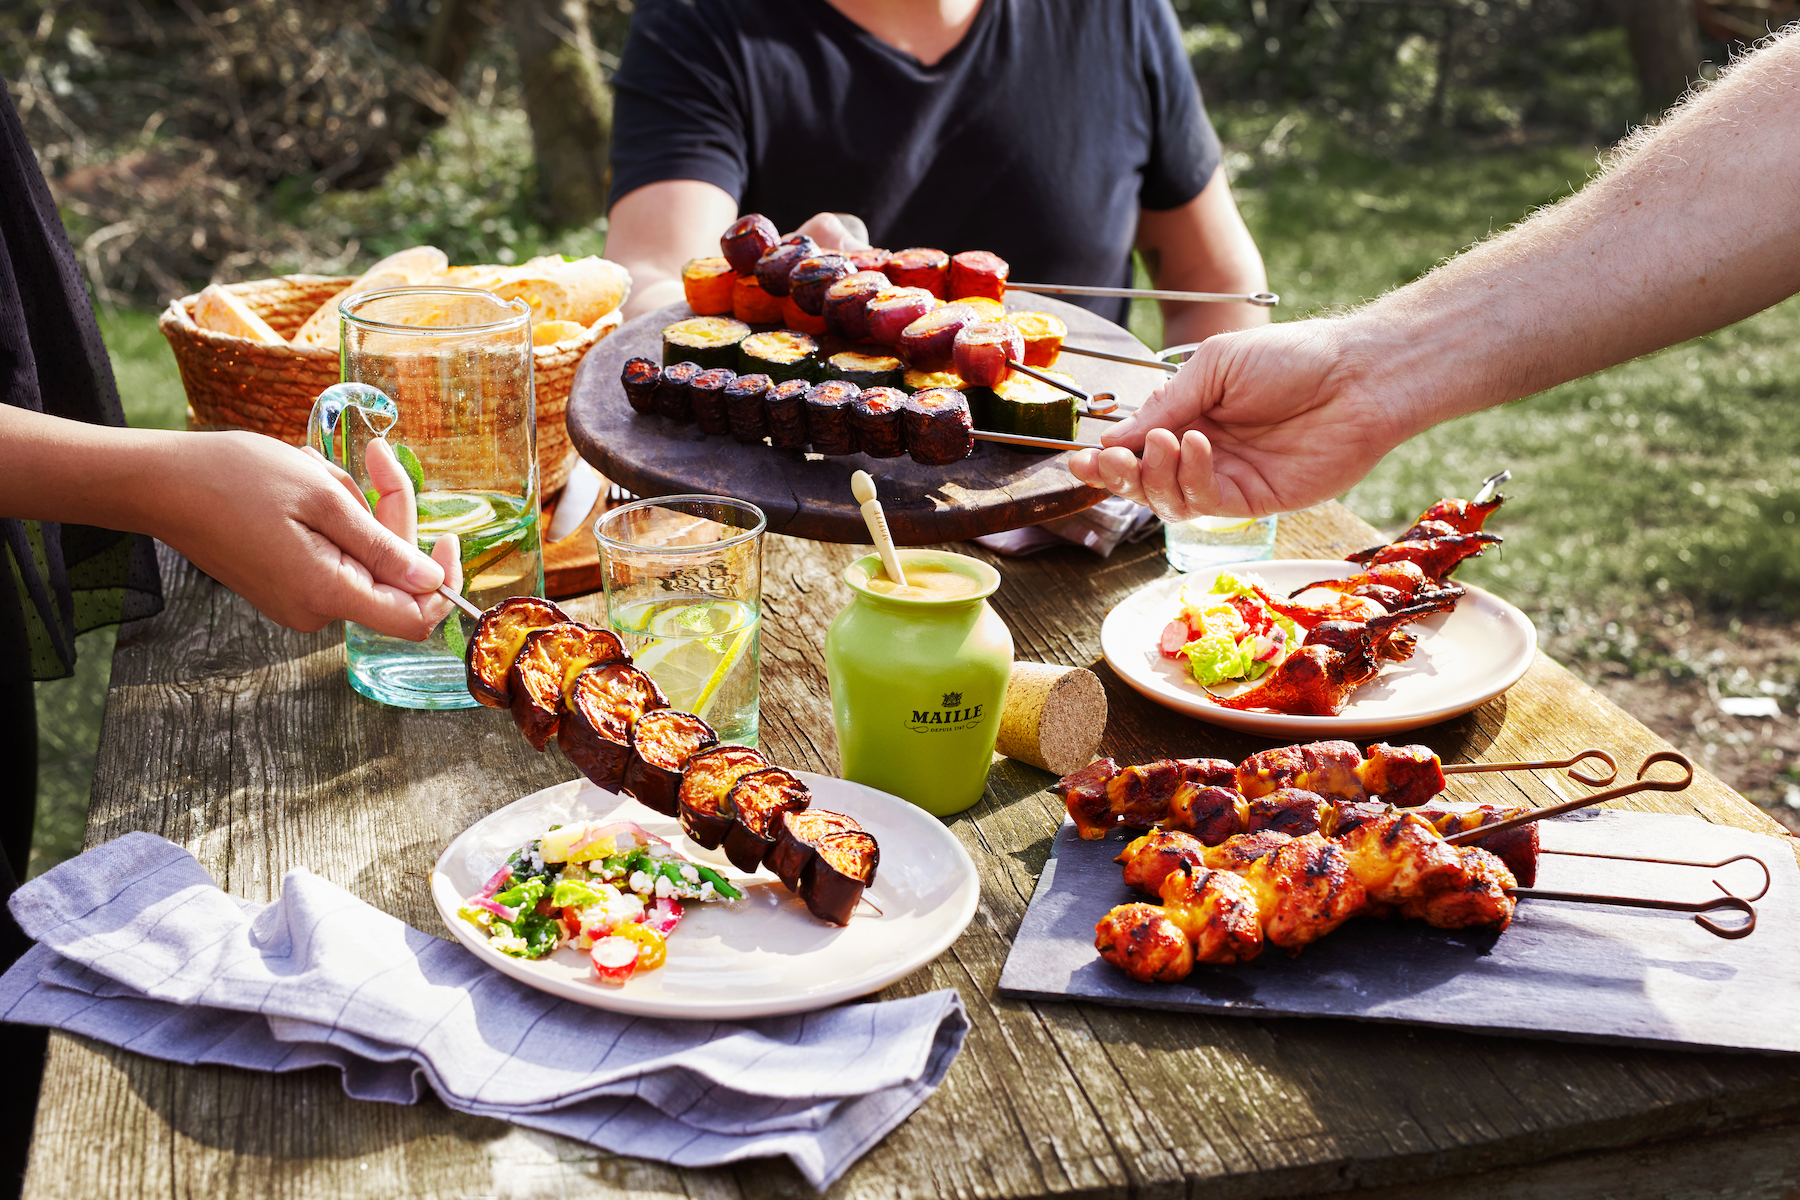 Maille - Brochettes Maille au barbecue, gourmet